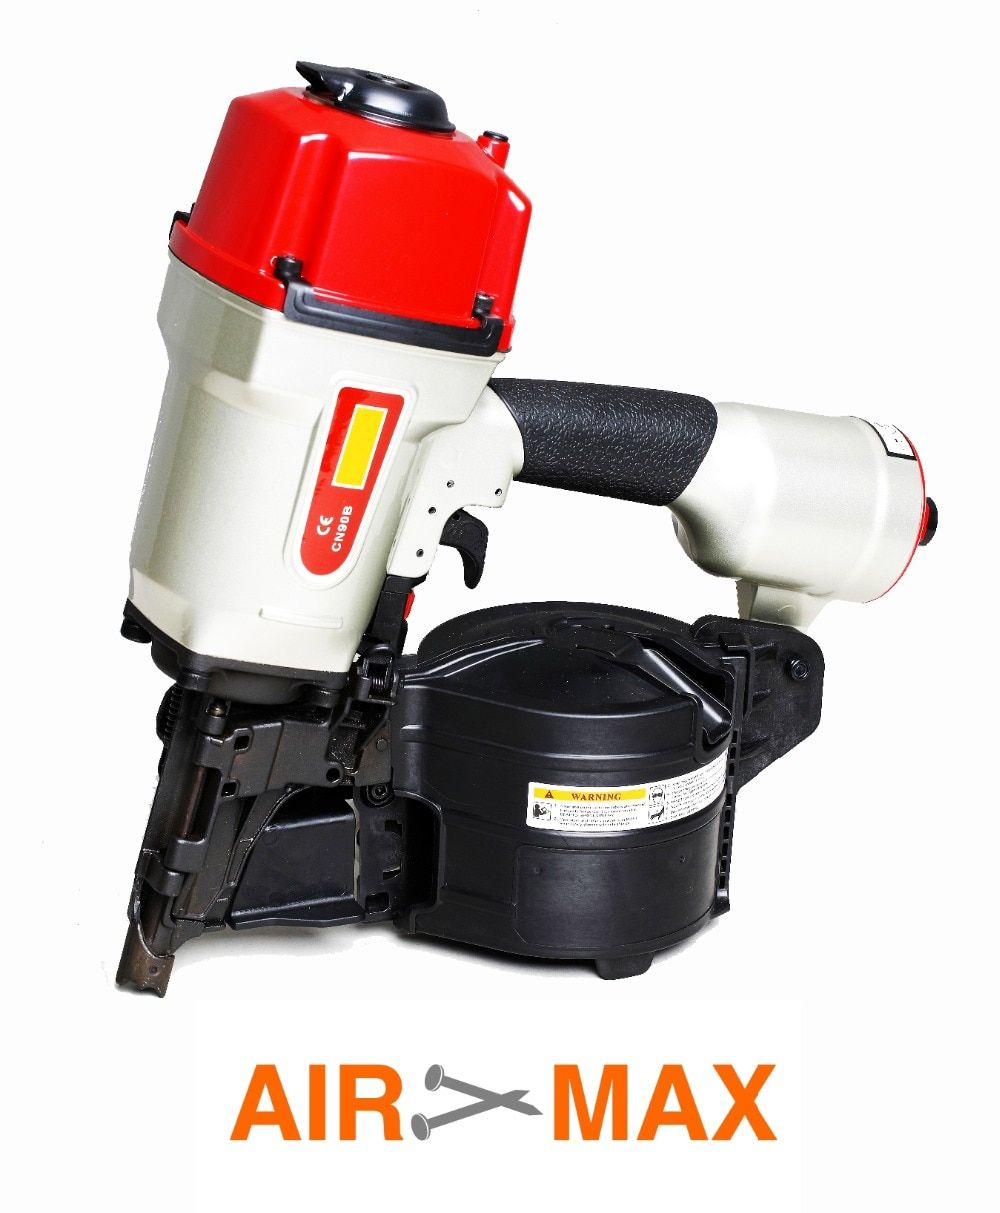 AIR INDUSTRIAL COIL NAIL GUN CN90B (not include the customs tax)